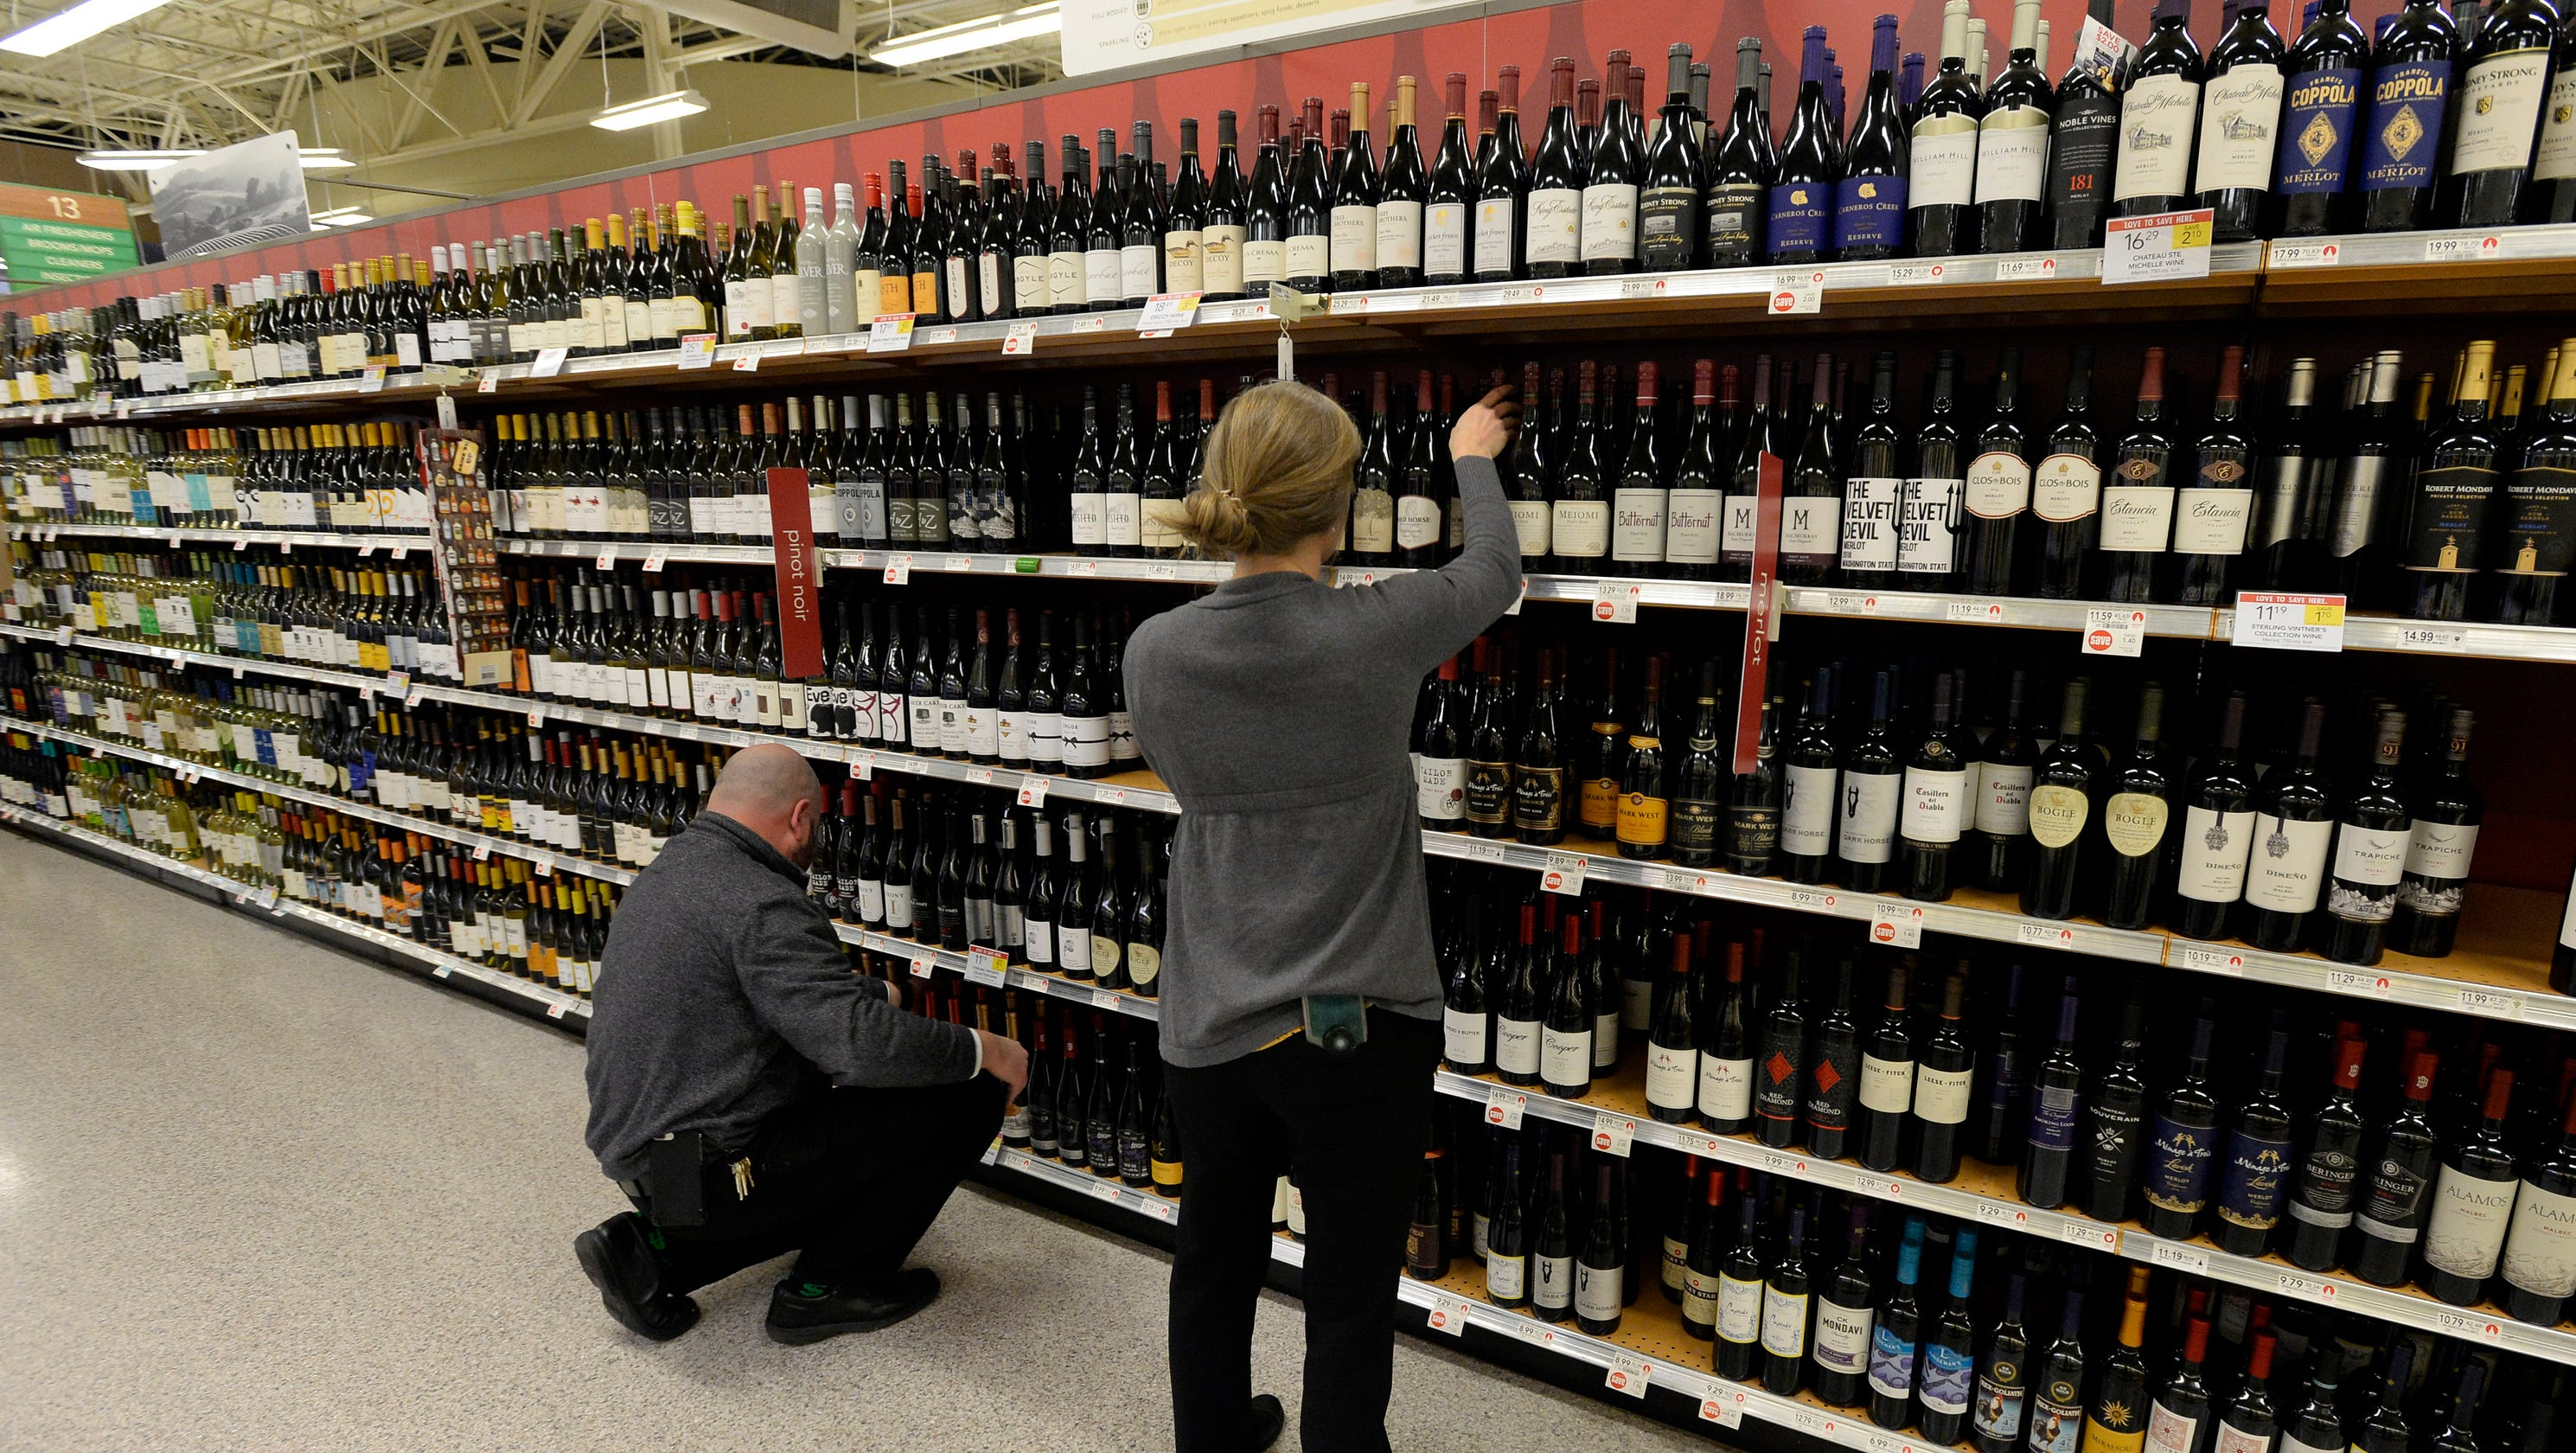 Can you buy wine on Sunday in Tennessee?